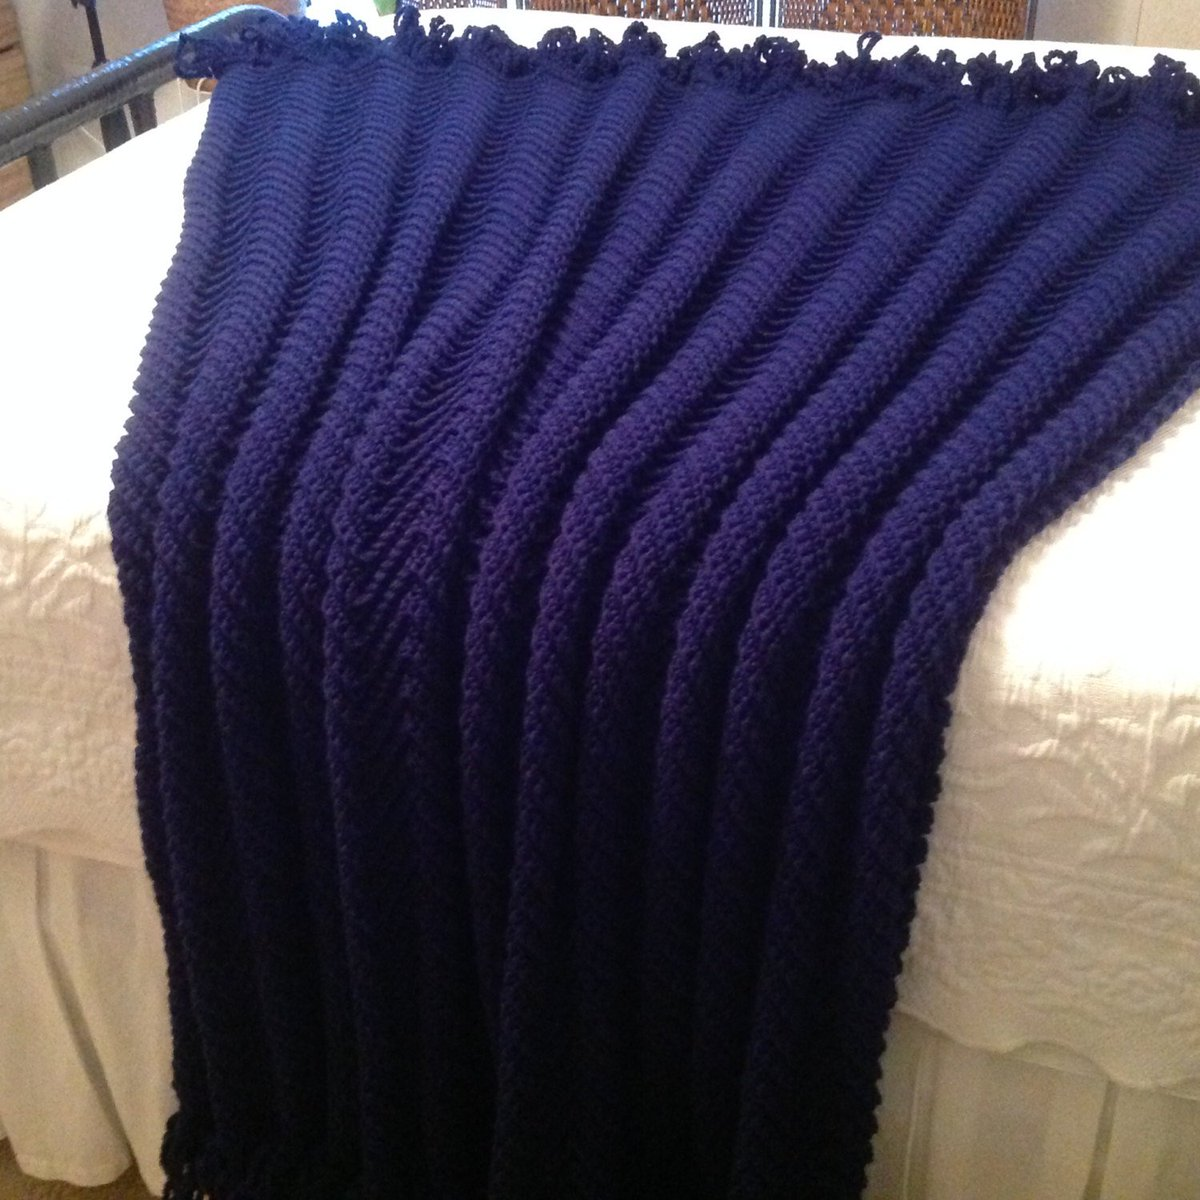 Large Navy Afghan, Hand Crocheted Throw, Boho Chevron Blanket, In-law G…  http:// tuppu.net/a67e450d  &nbsp;   #Etsy #MilitaryGift <br>http://pic.twitter.com/BBA09nXOjn